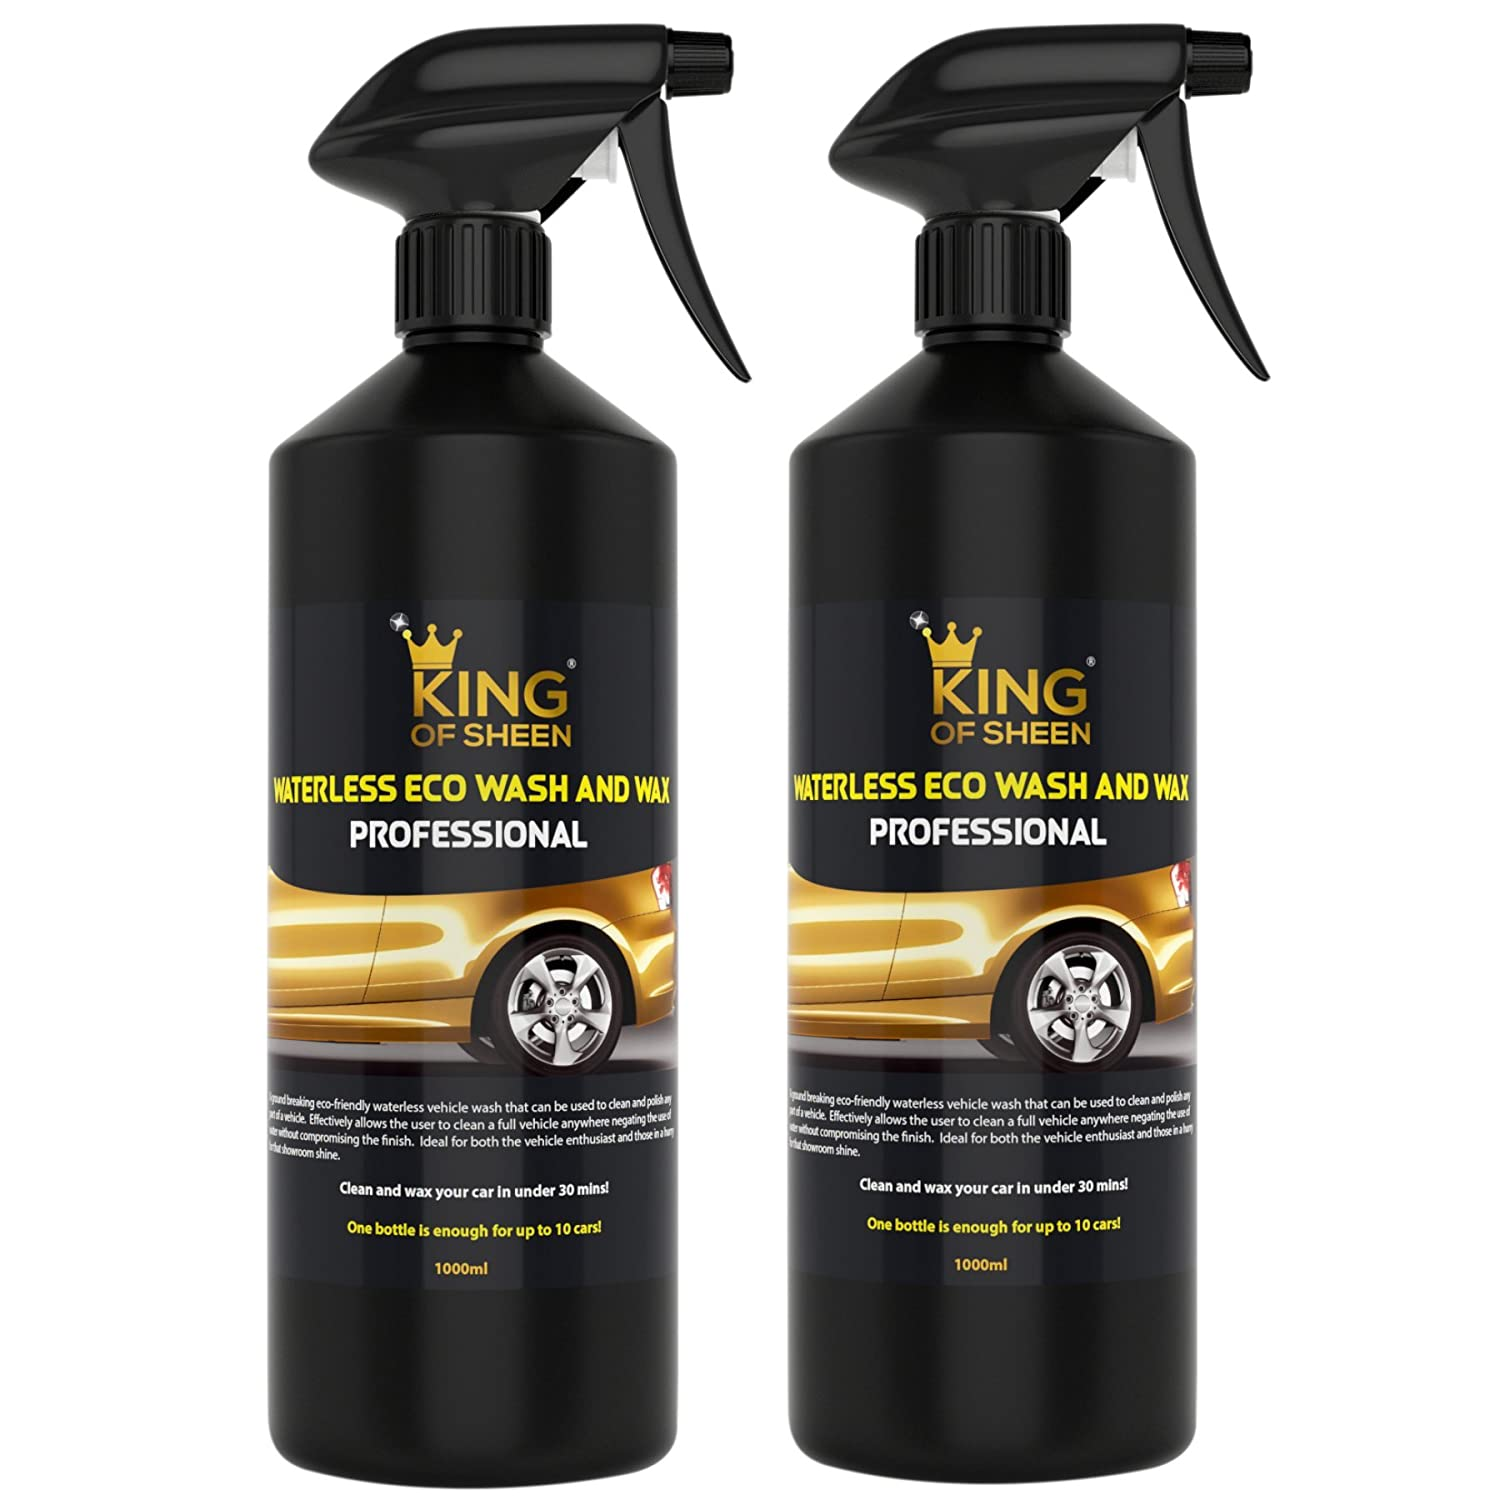 King of Sheen professionale senza acqua lavaggio e cera auto Cleaner, no acqua Just Clean and Shine like New, auto liquido detergente spray per lavaggio auto, showroom lucida a specchio. 2  x litro confezione